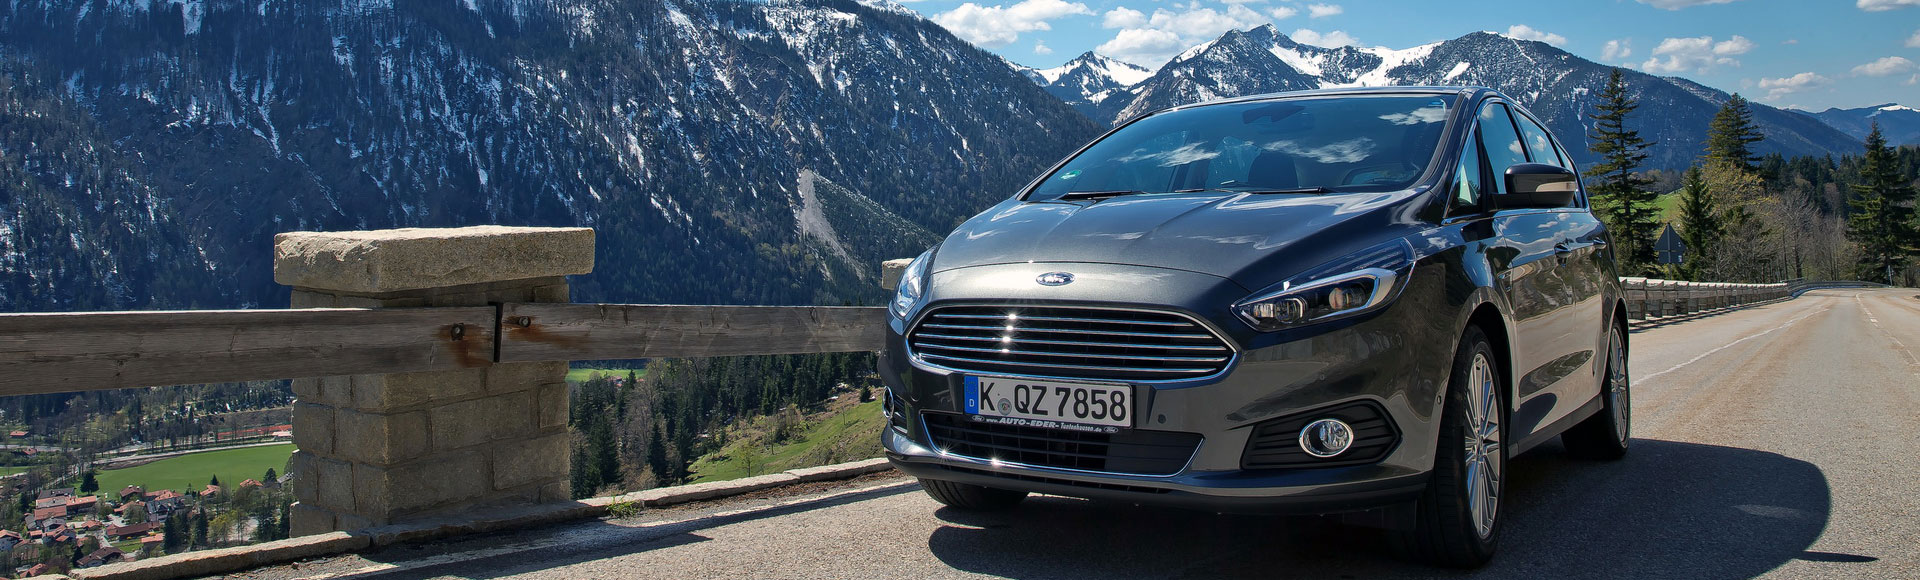 Ford S Max 2016 1444 Spring